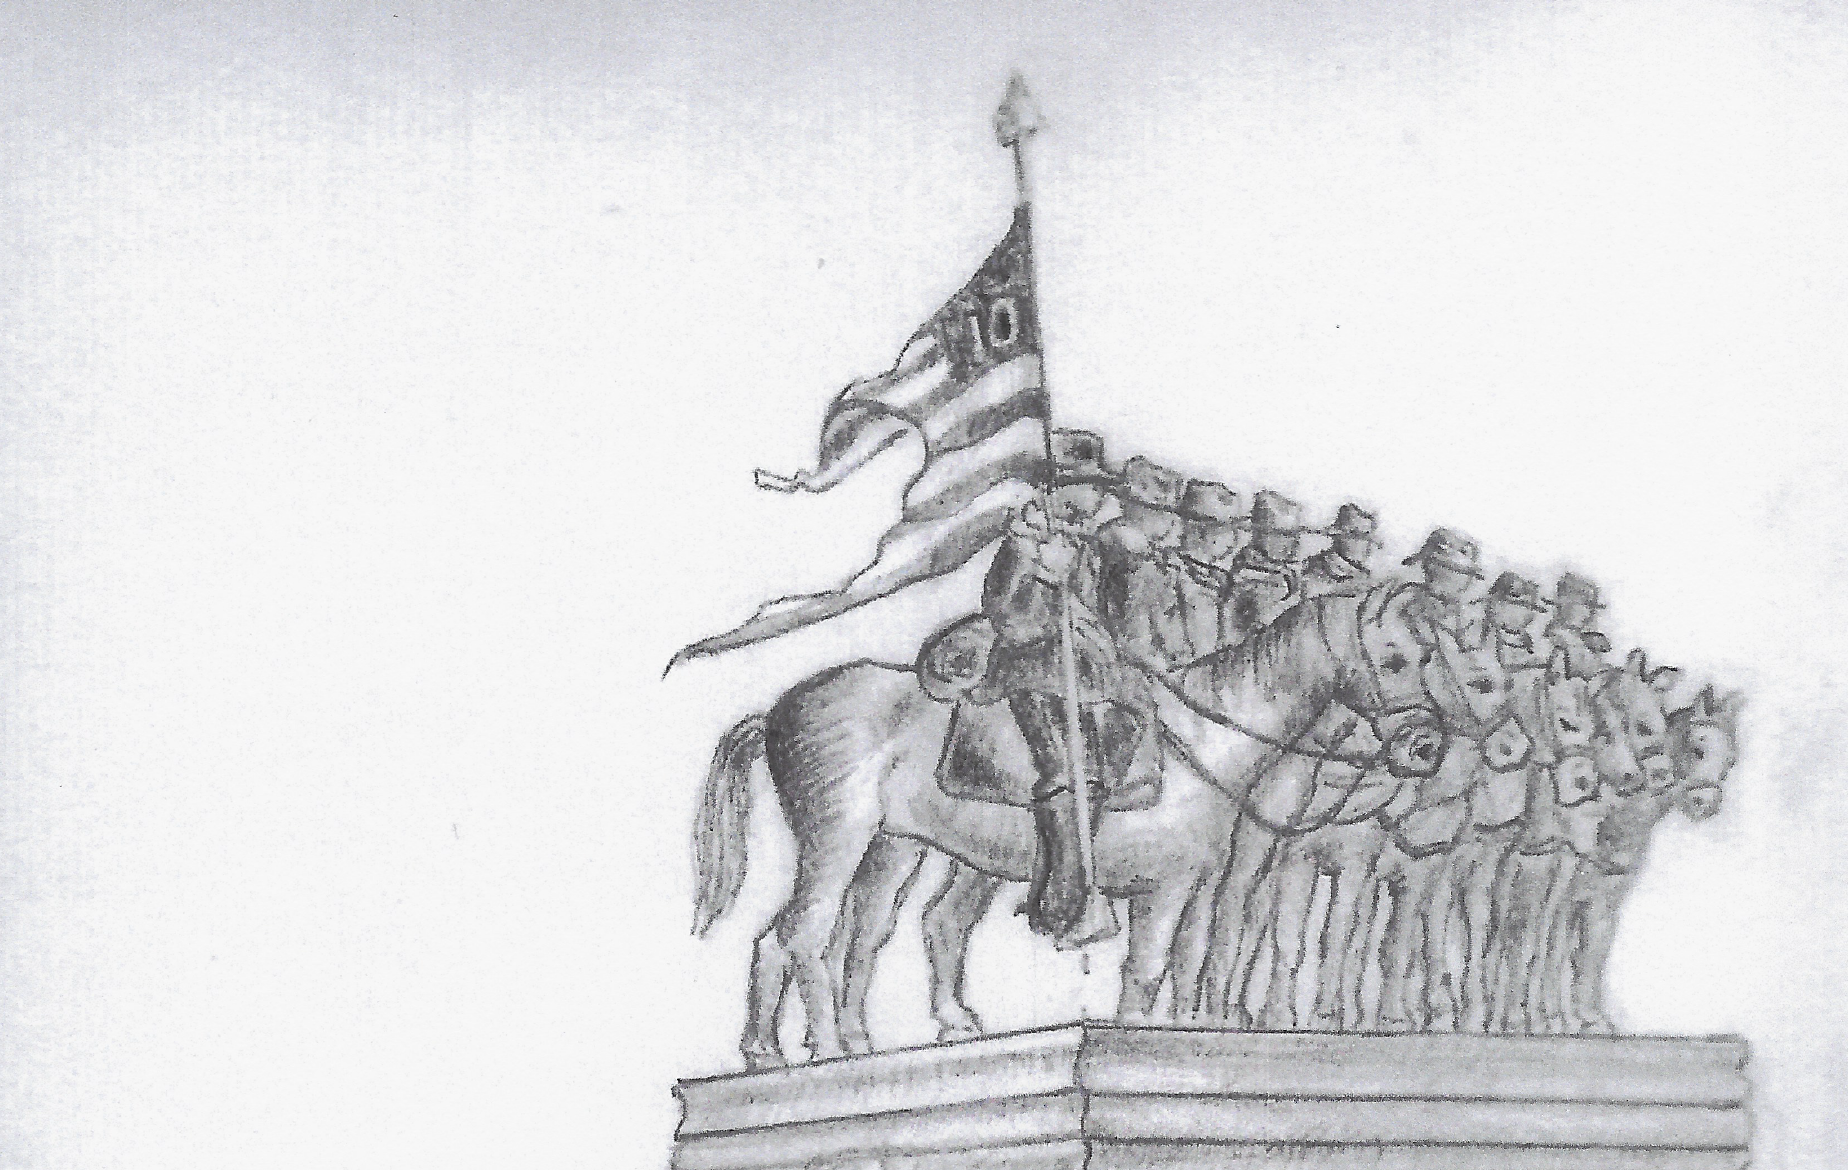 Buffalo Soldiers & Friends of Freedom Monument